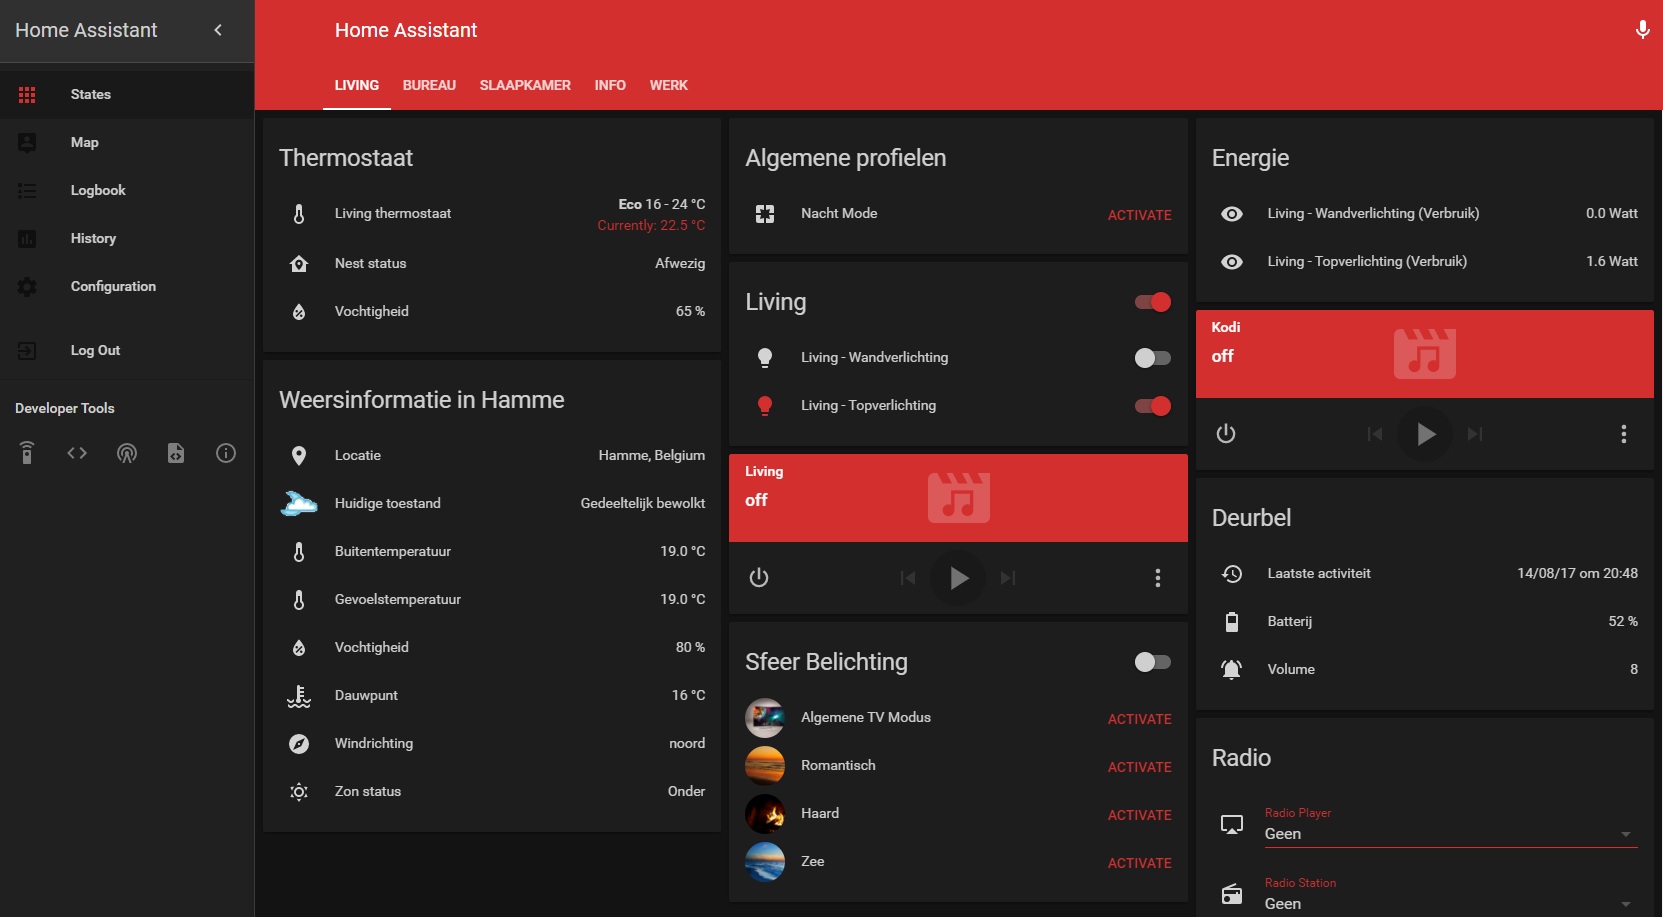 Dark Red Theme - Themes - Home Assistant Community